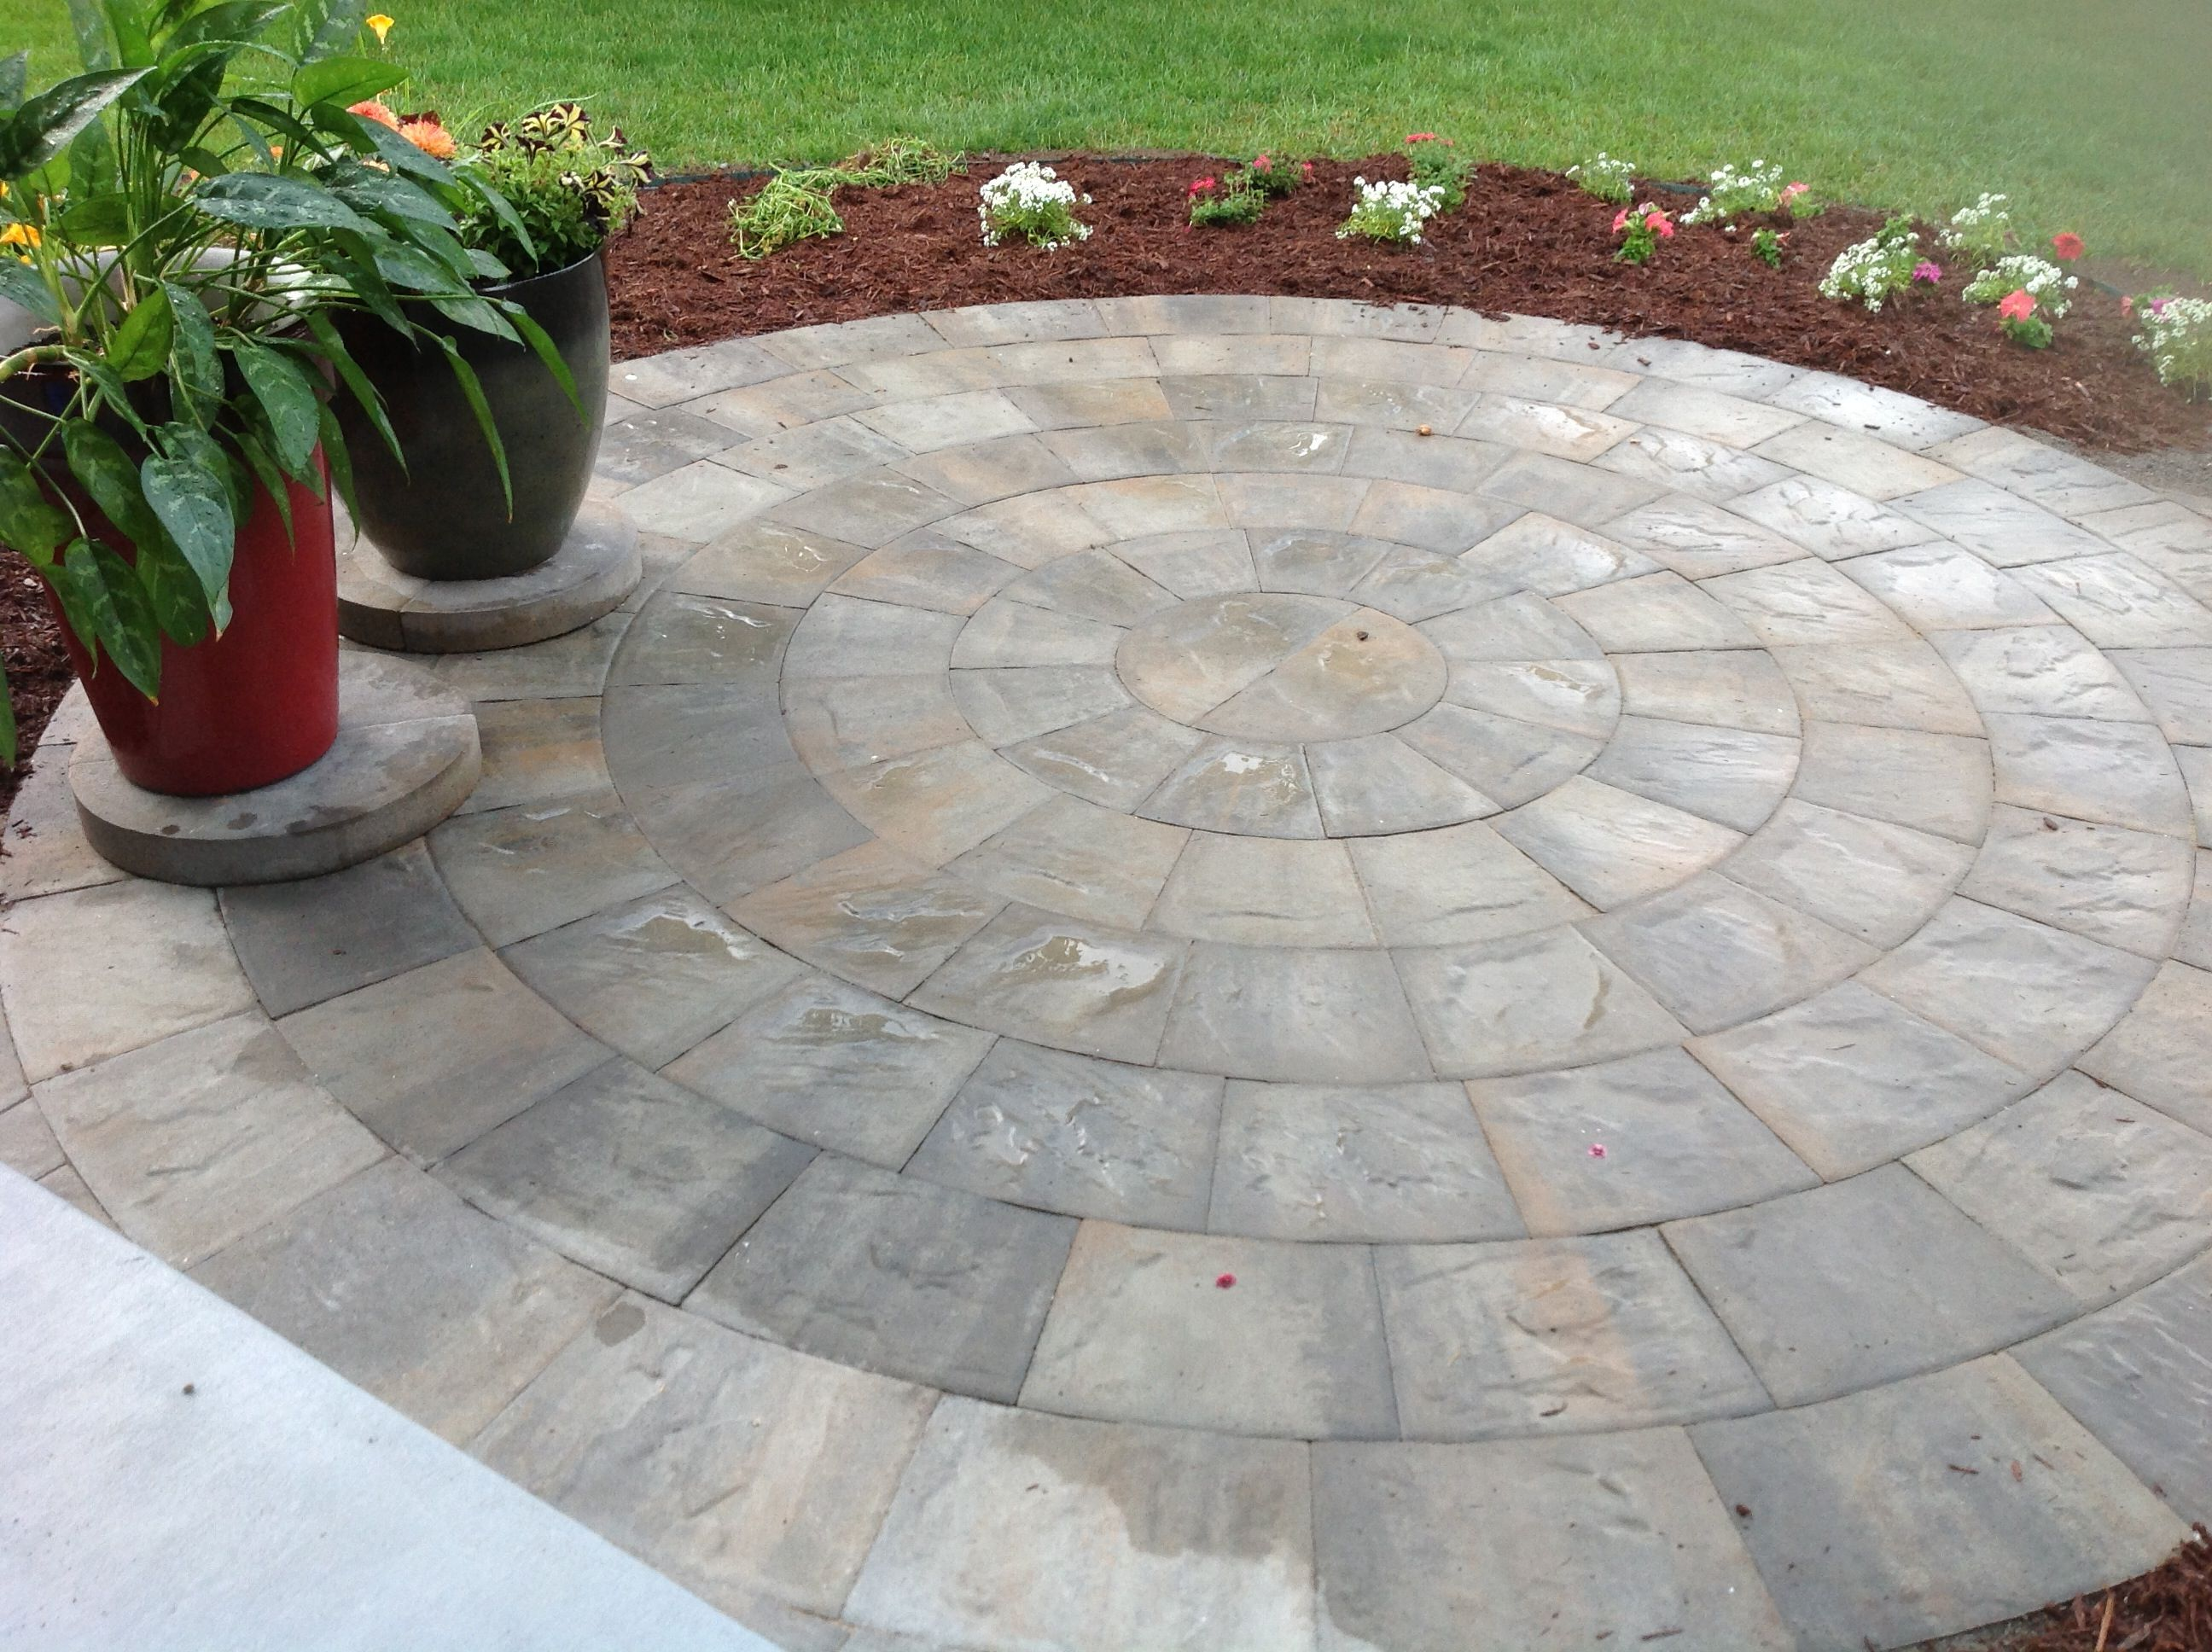 New Front Walkway 10 Foot Paver Circle Patio Front Walkway Wrap Around Porch